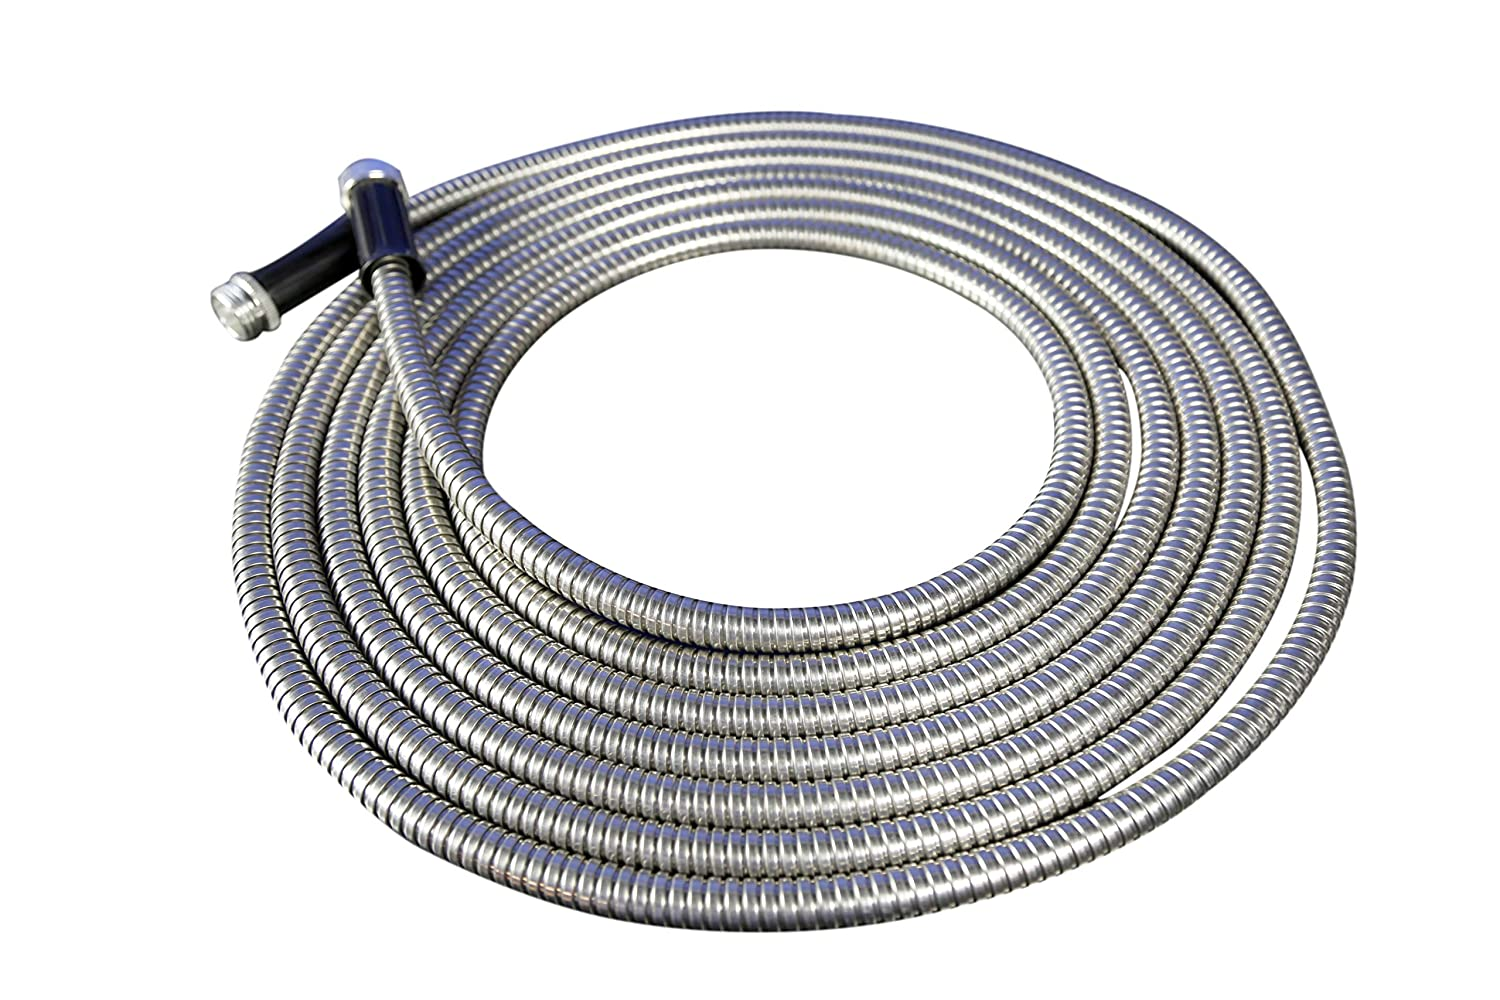 Forever Steel Hose 25 304 Stainless Steel Garden Hose - As Seen On TV - Lightweight, Kink-Free, and Stronger Than Ever, Durable and Easy to Use